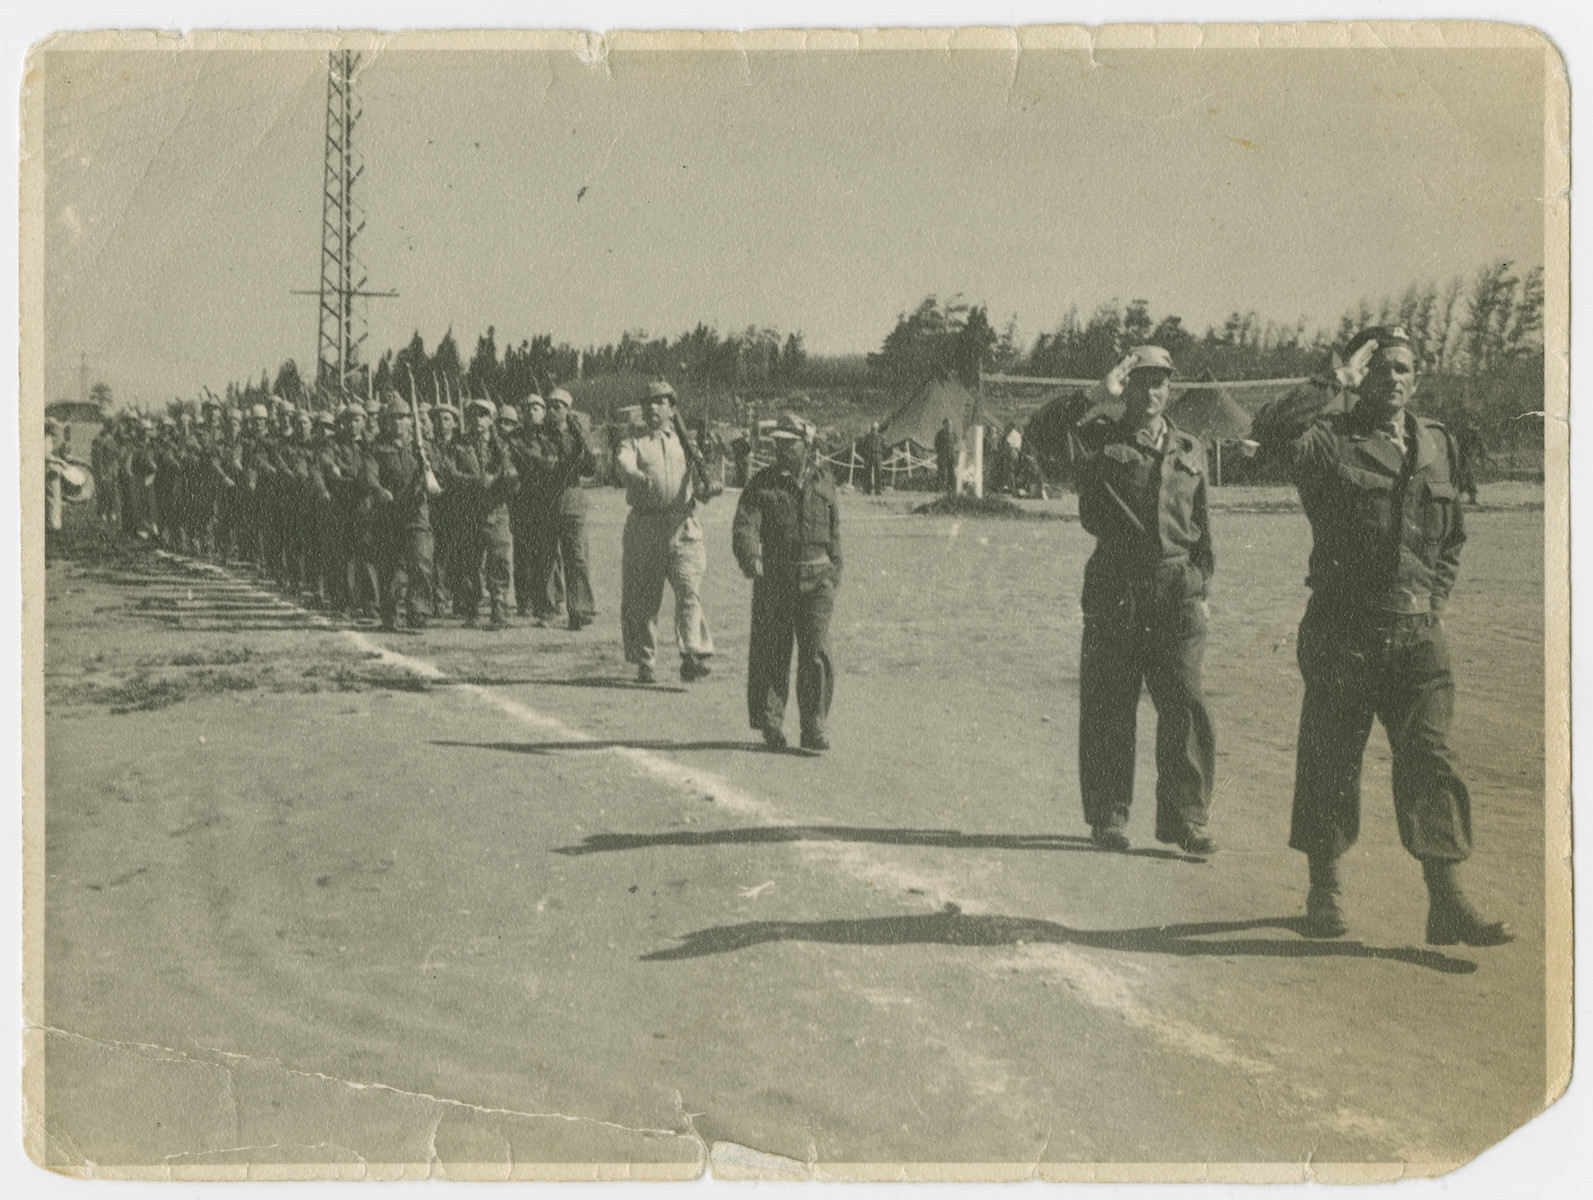 Lt. Yehuda Bielski (front right) leads his unit on parade.